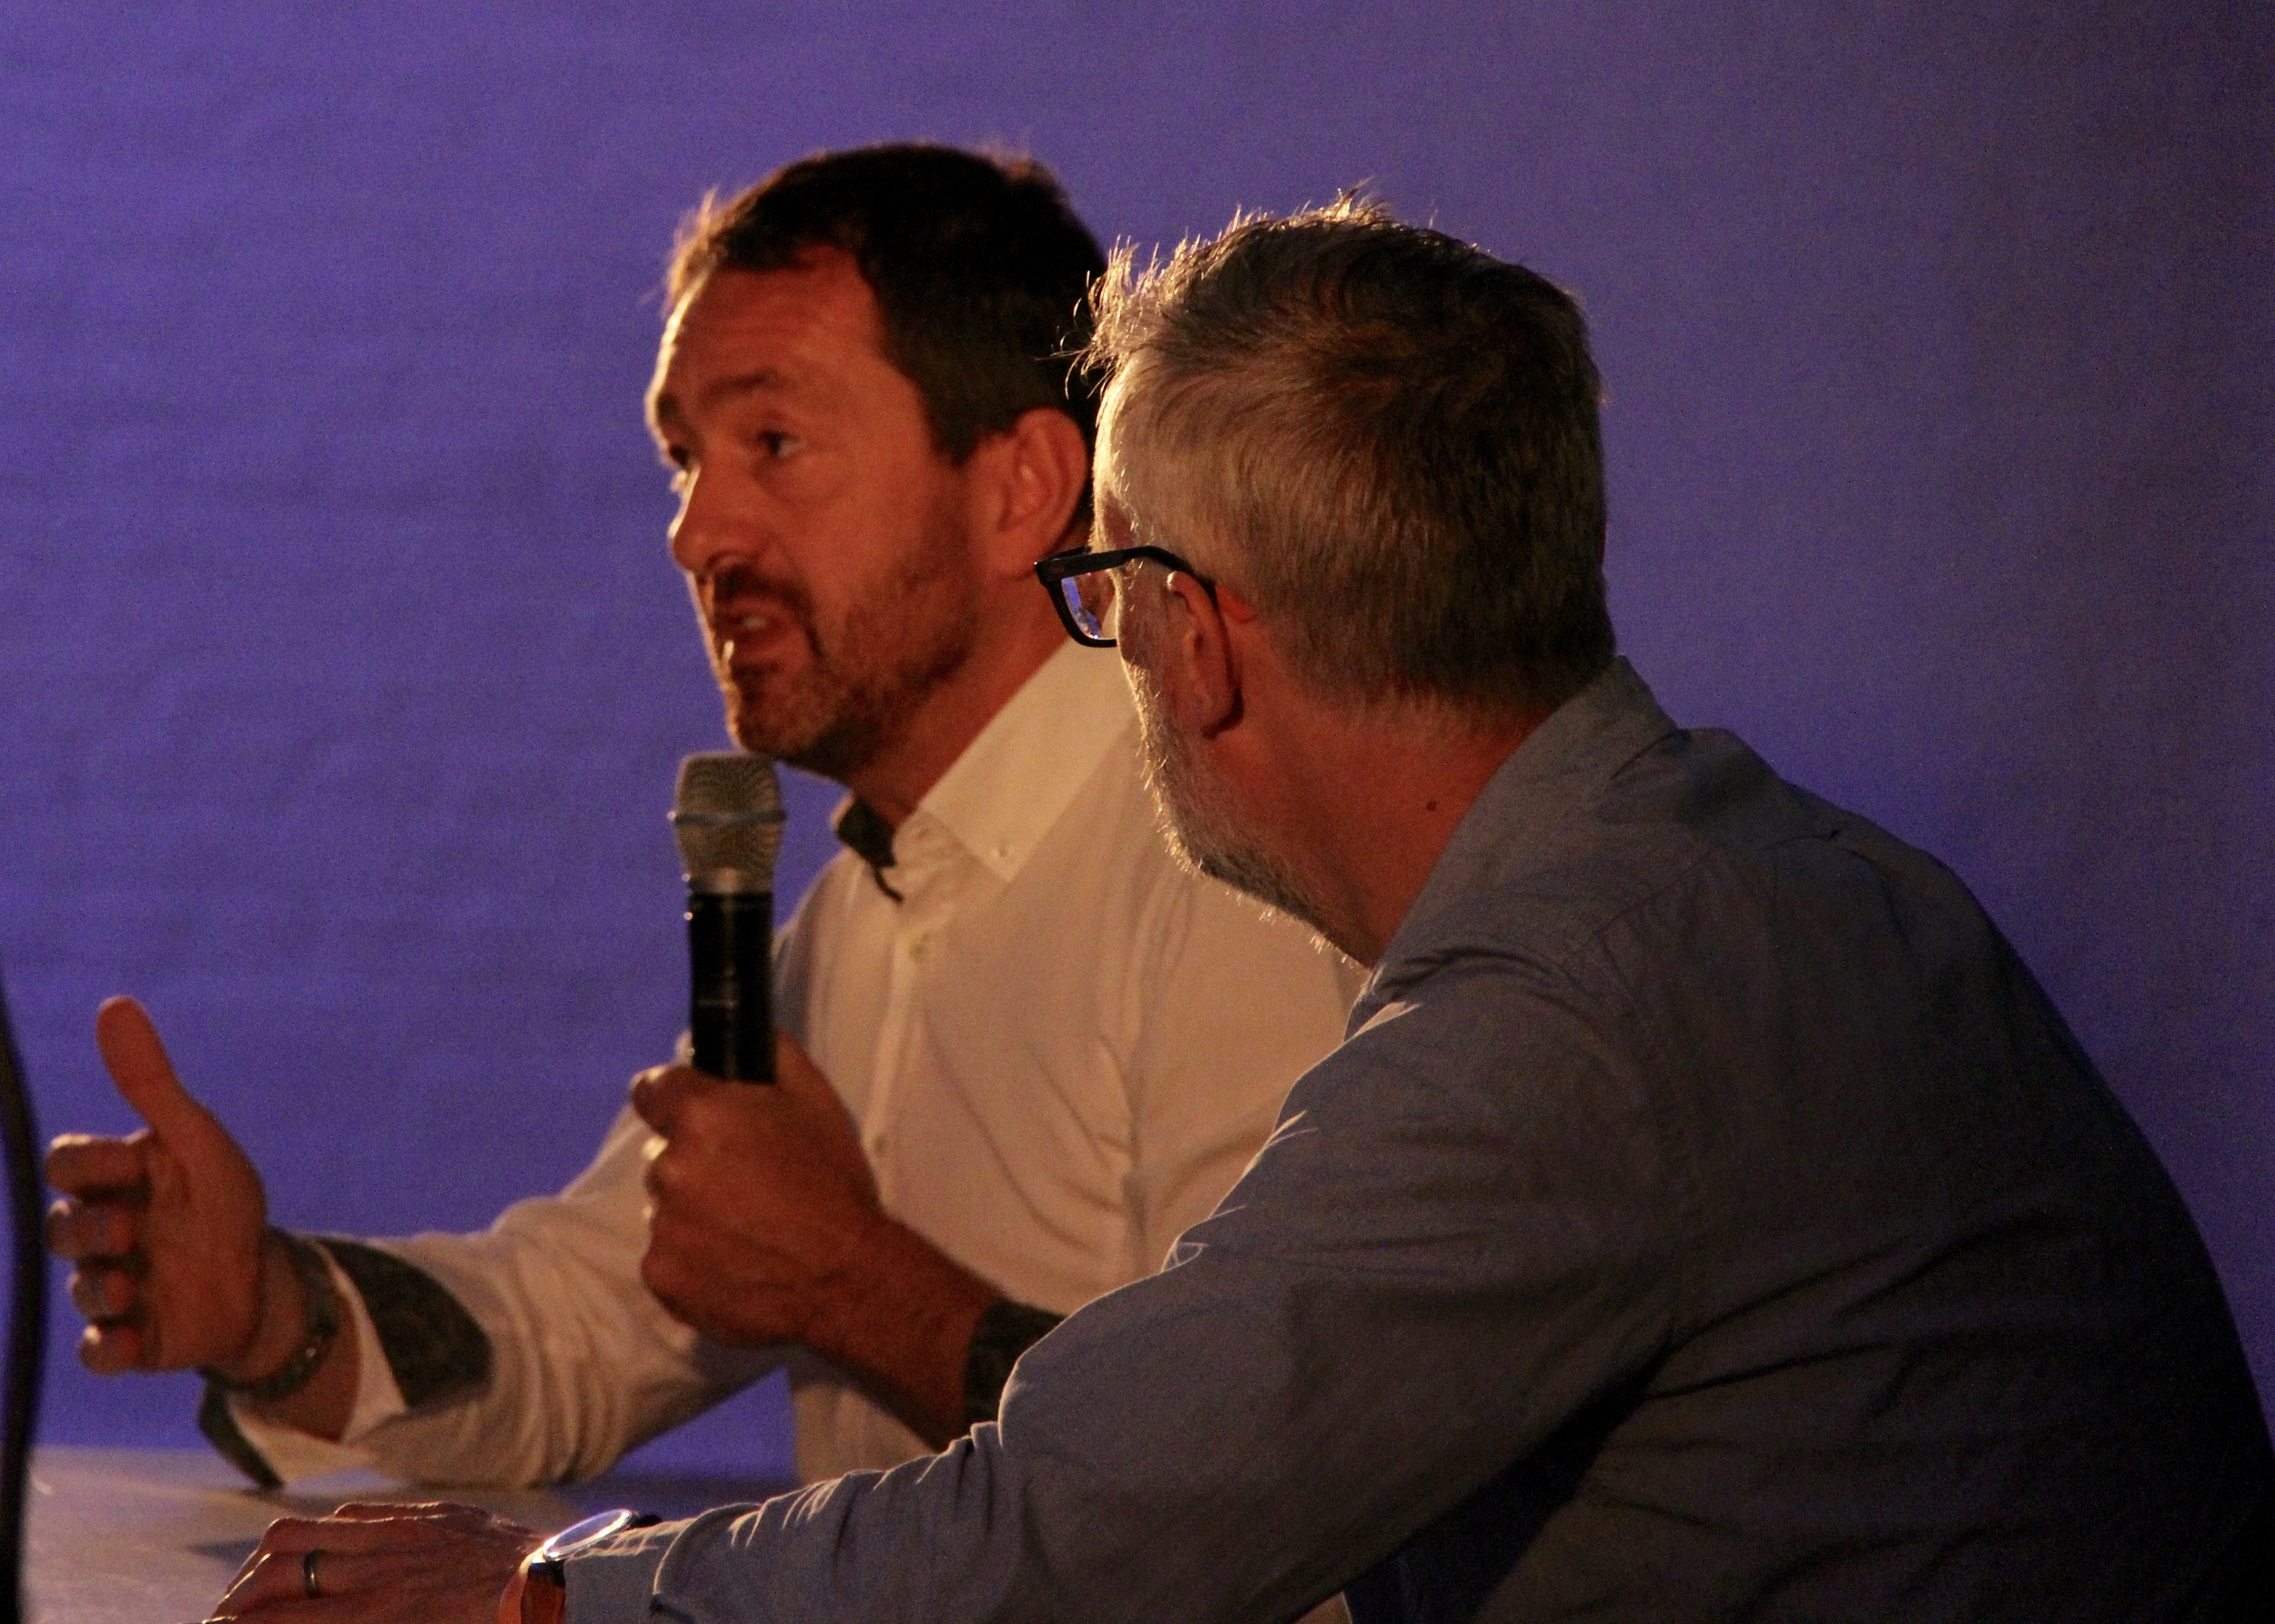 Chris Boardman opens up for the audience at Spin London